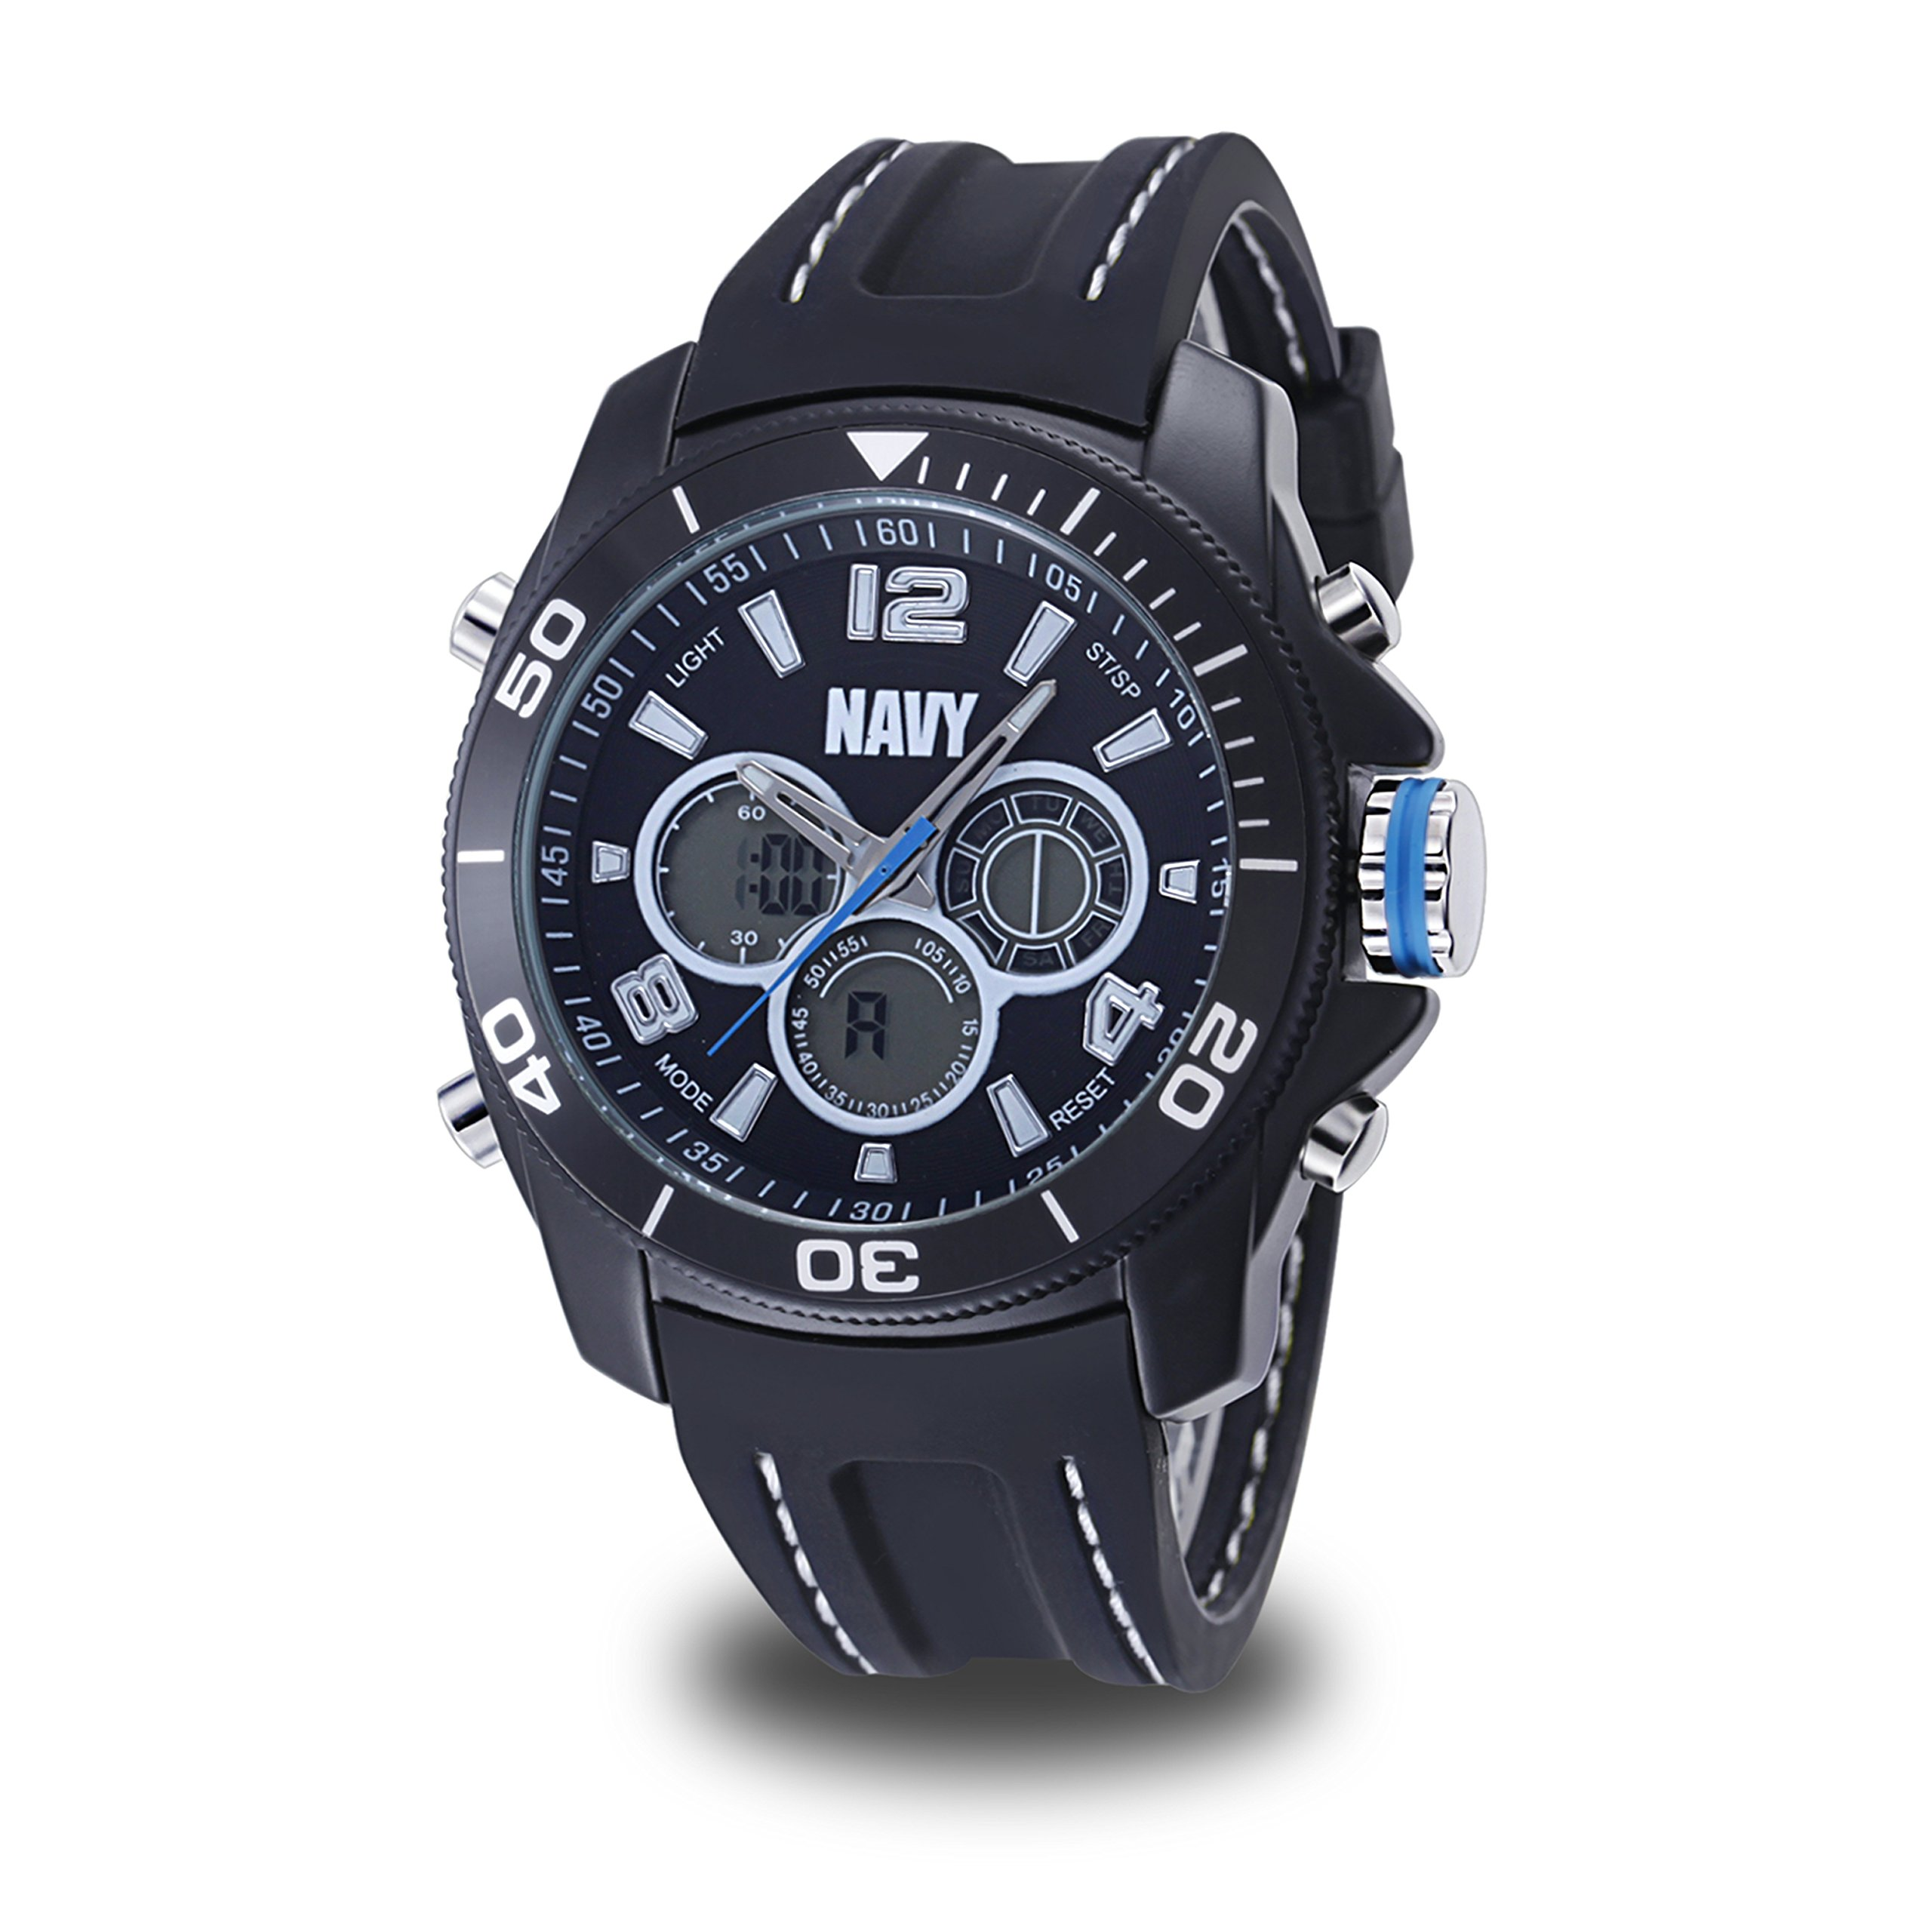 US Military Men's Analog-Digital Chronograph Black Silicone Strap Watch by Wrist Armor